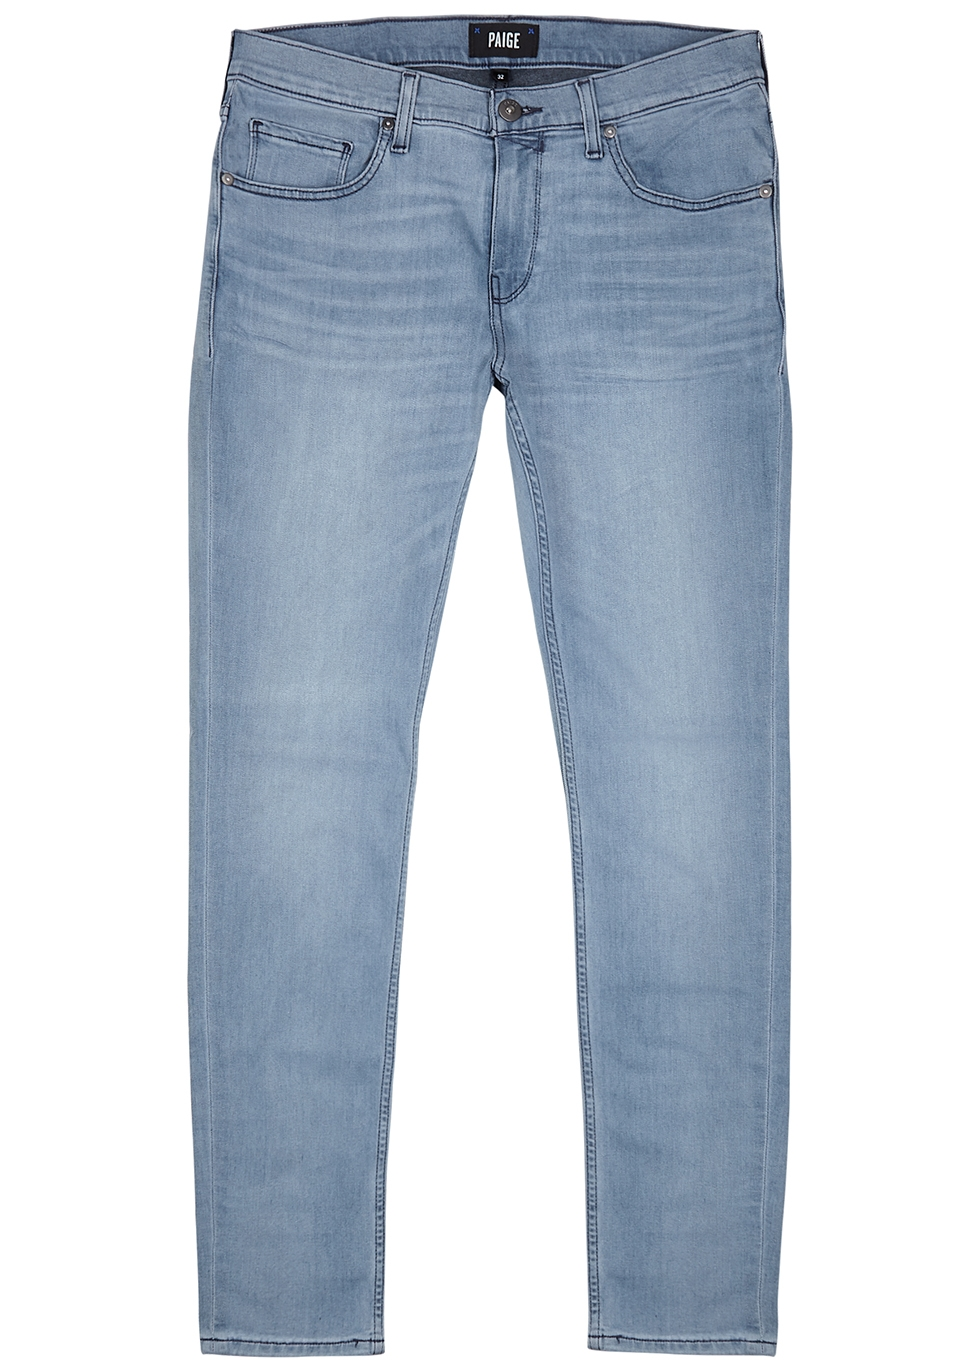 Croft Transcend light blue skinny jeans